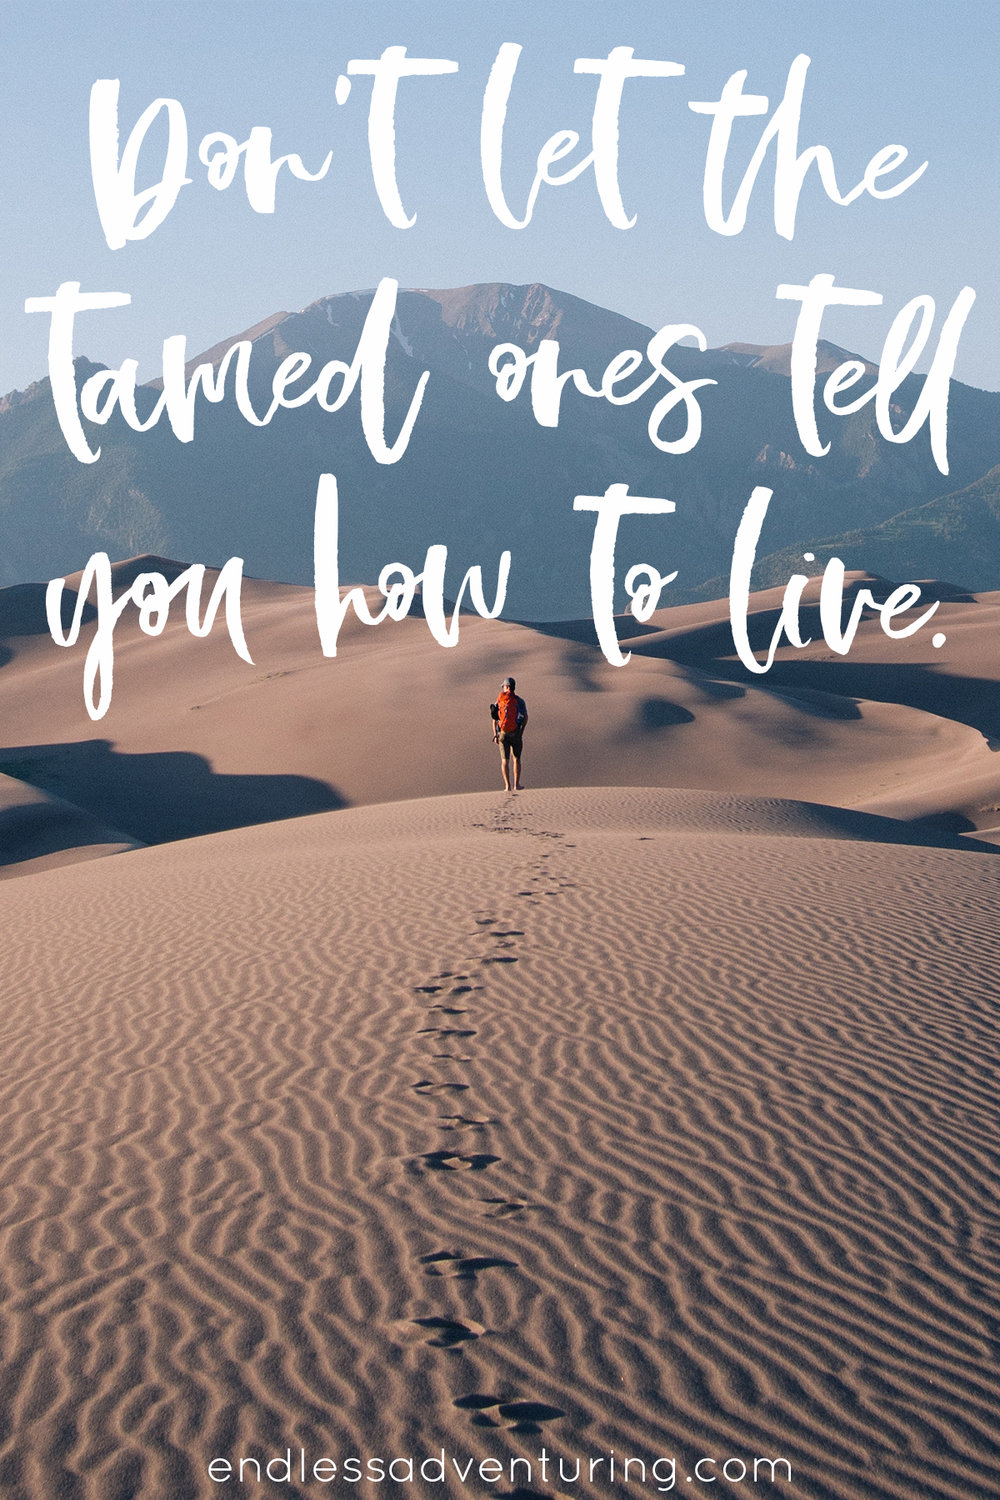 Adventure Quote - Don't Let The Tamed Ones Tell You How To Live